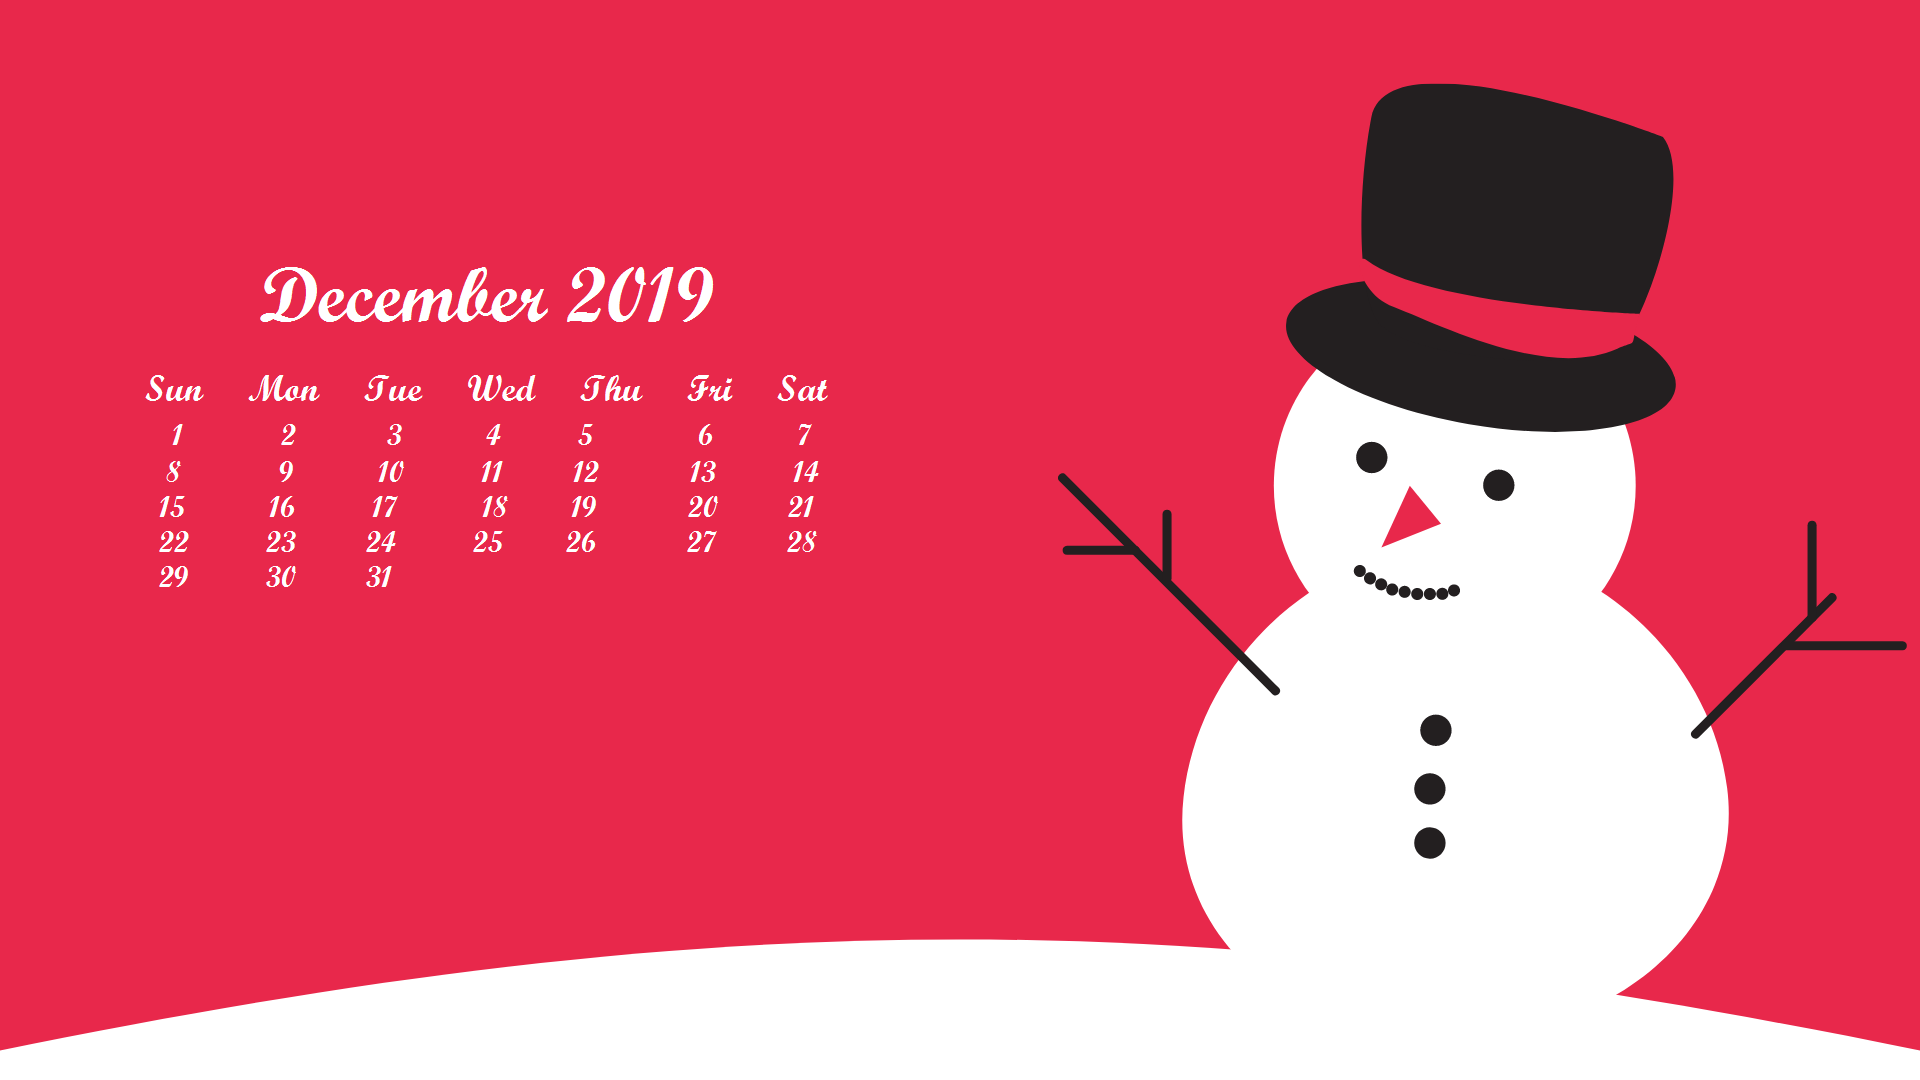 December 2019 Desktop Calendar Wallpaper